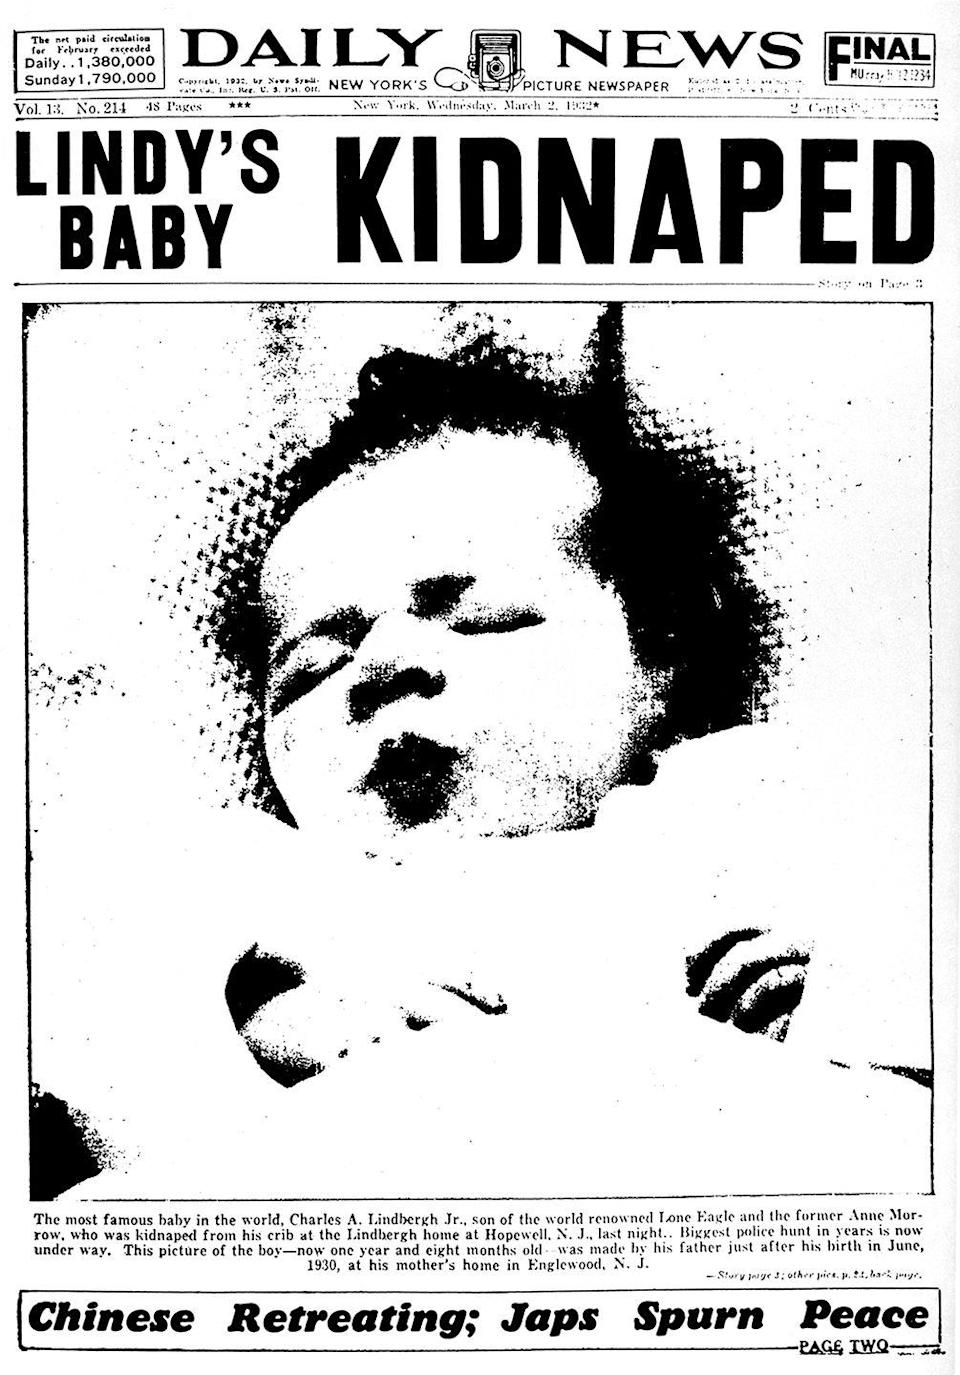 <p>When aviator Charles Lindbergh's infant son was kidnapped, the entire world focused their attention on the story. Many remember the case going cold, but they sadly found the body and sentenced the killer to death for the heinous crime. </p>